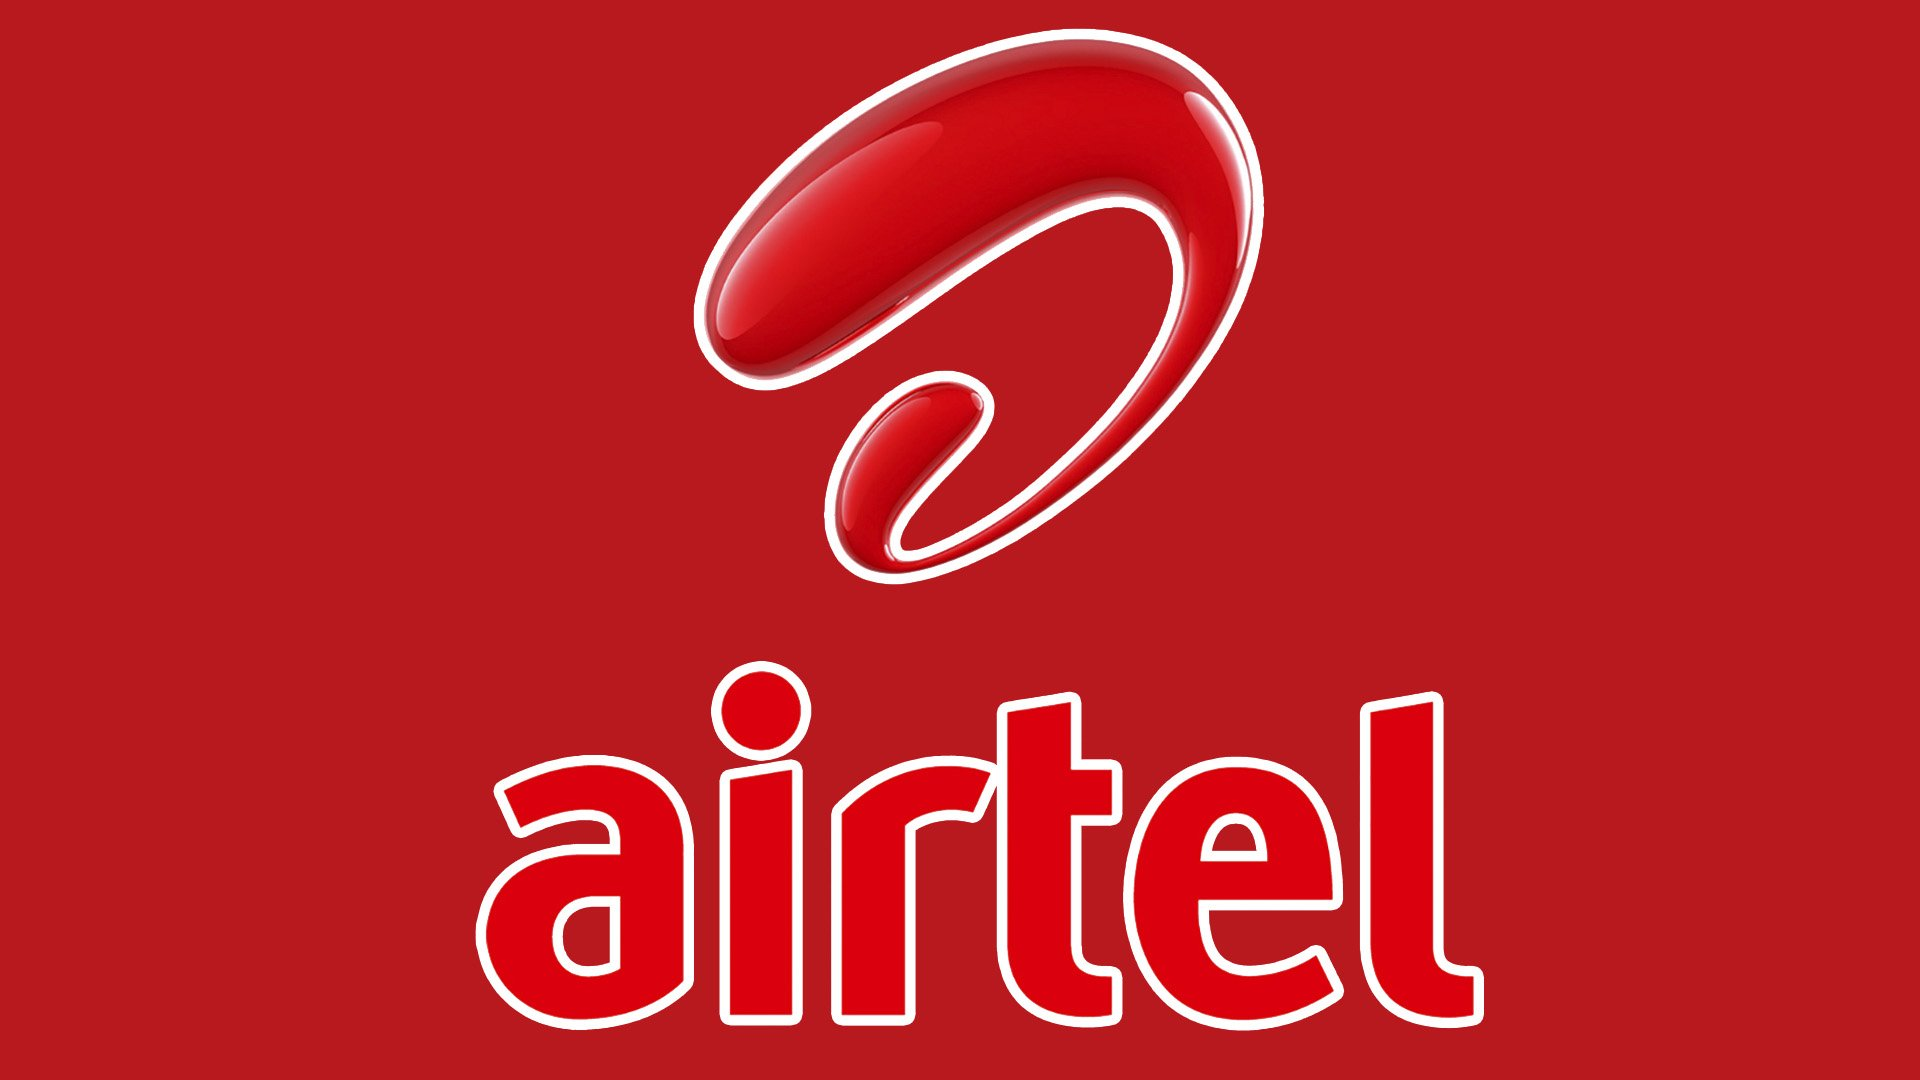 Airtel Networks Limited